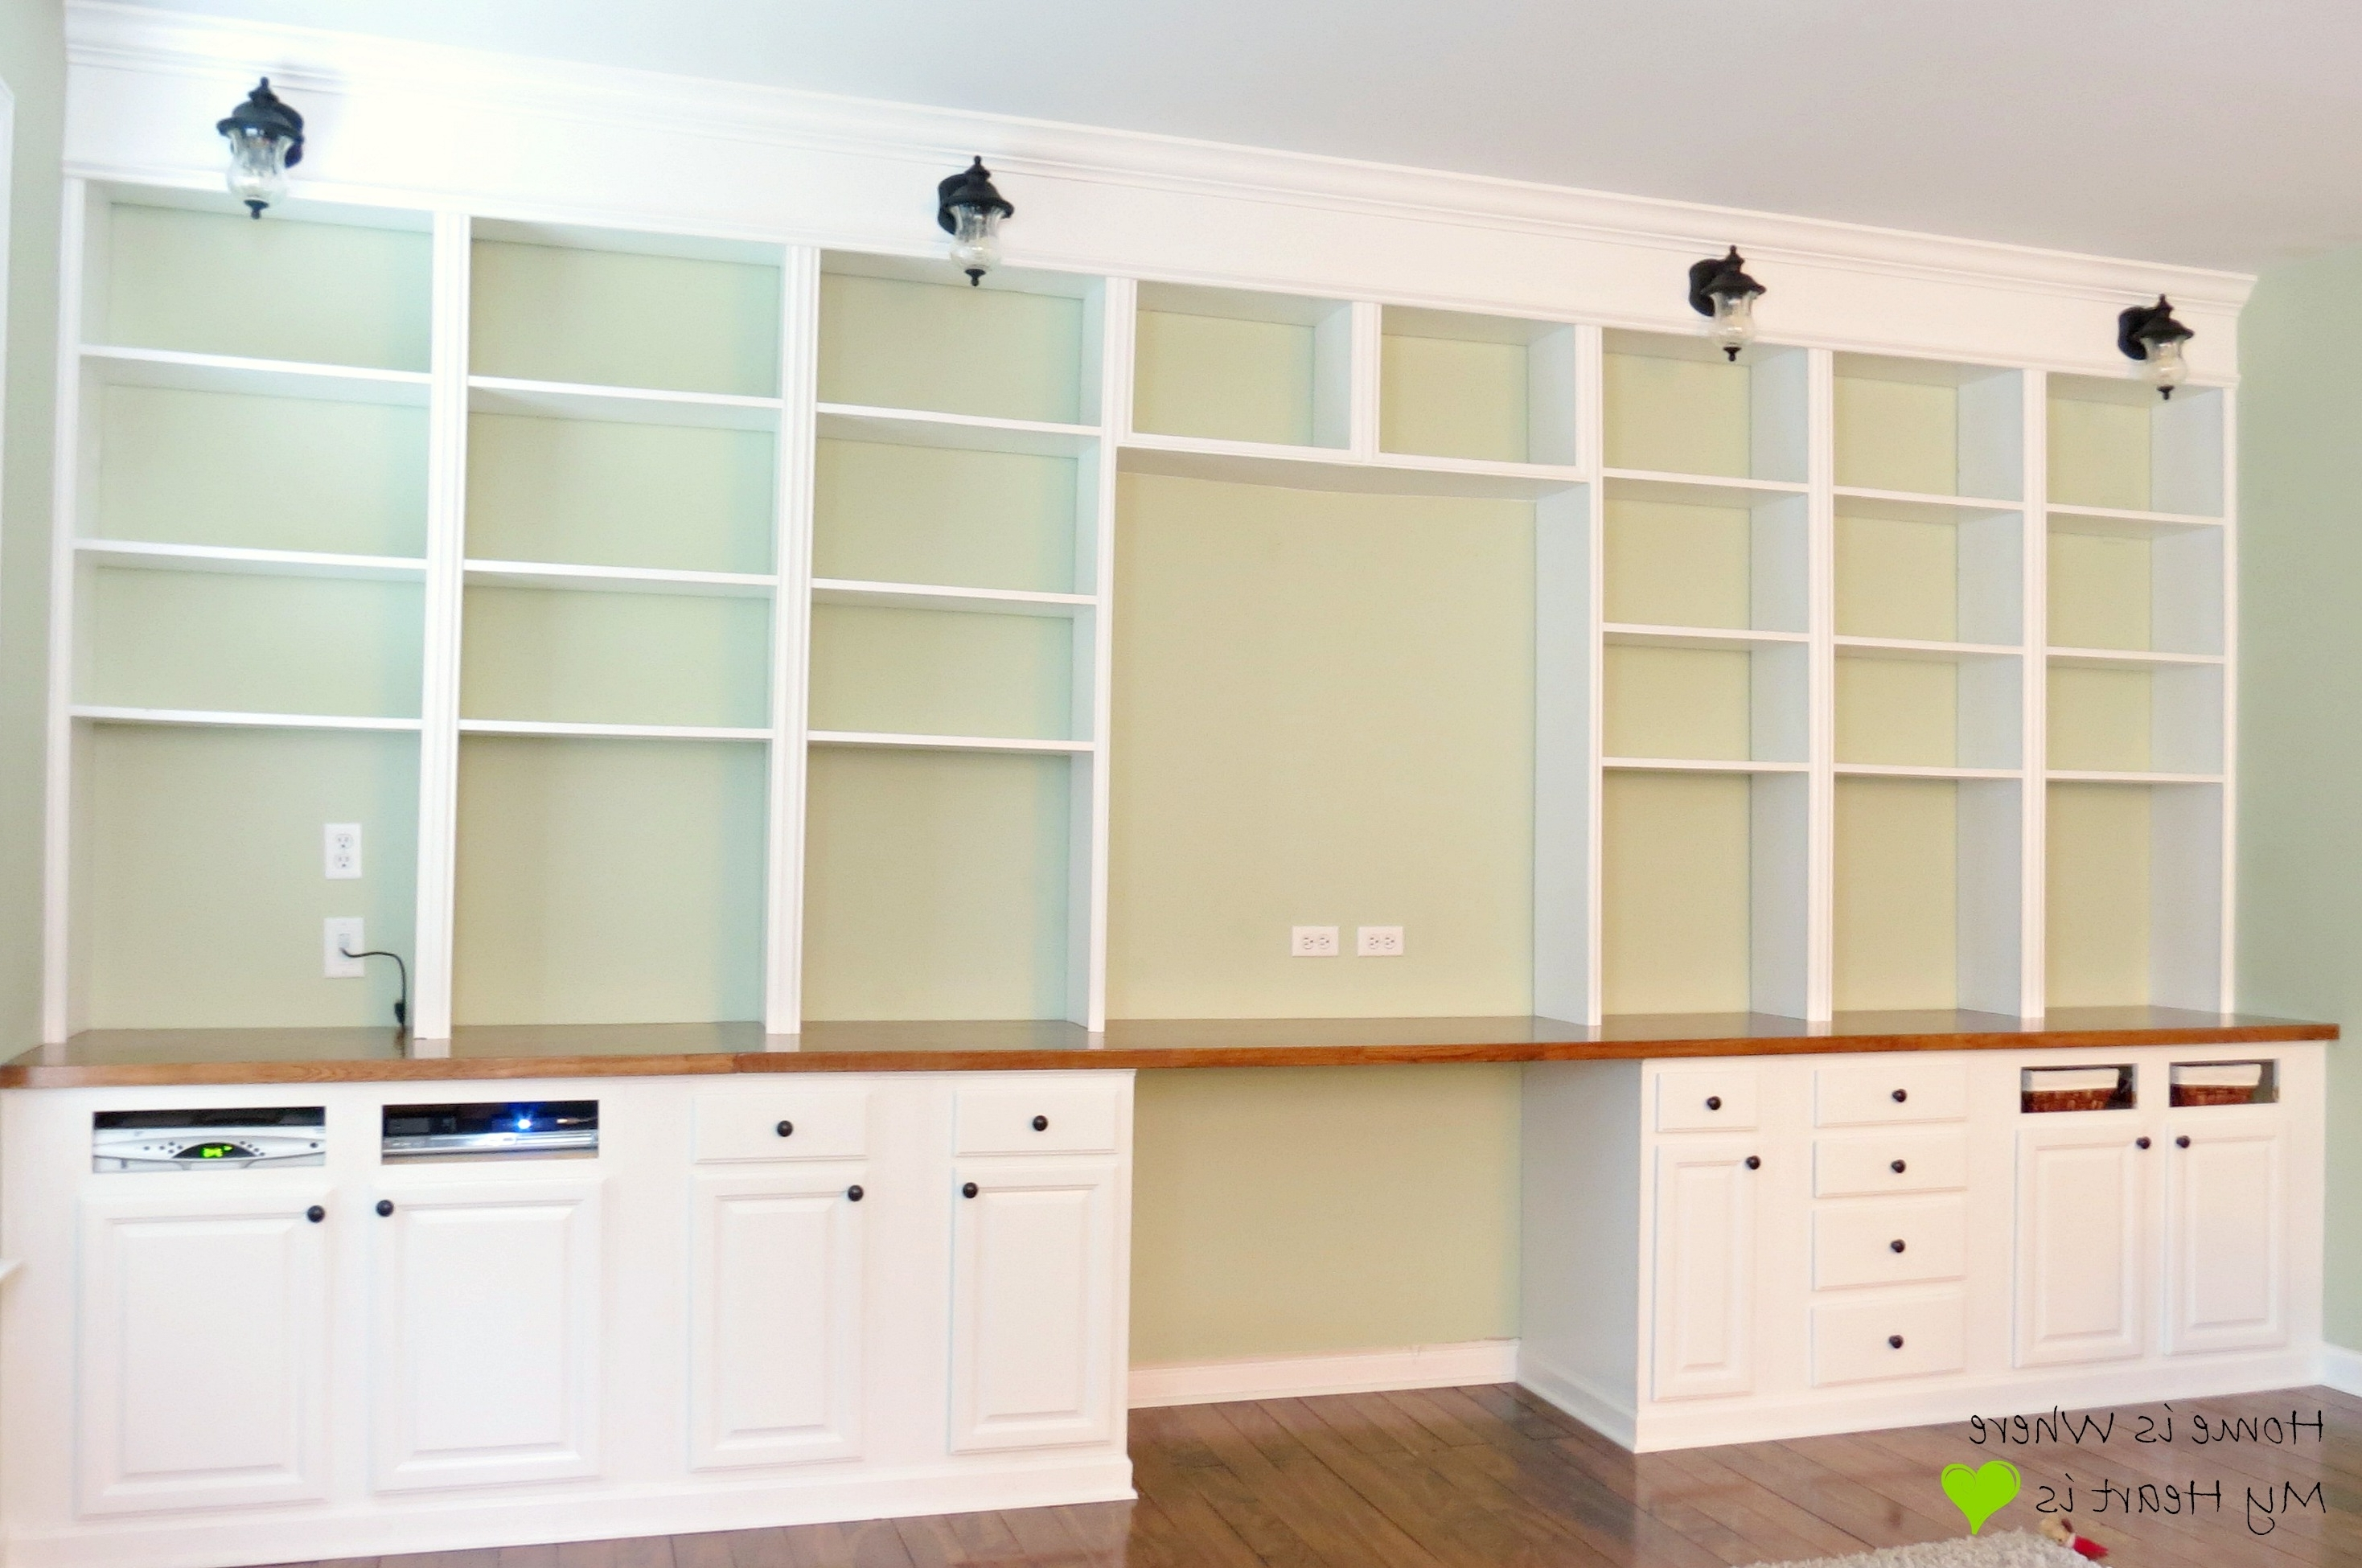 Full Wall Bookcases Within Latest Modern Wall Bookshelves With Intricate And Unexpected Design (View 7 of 15)